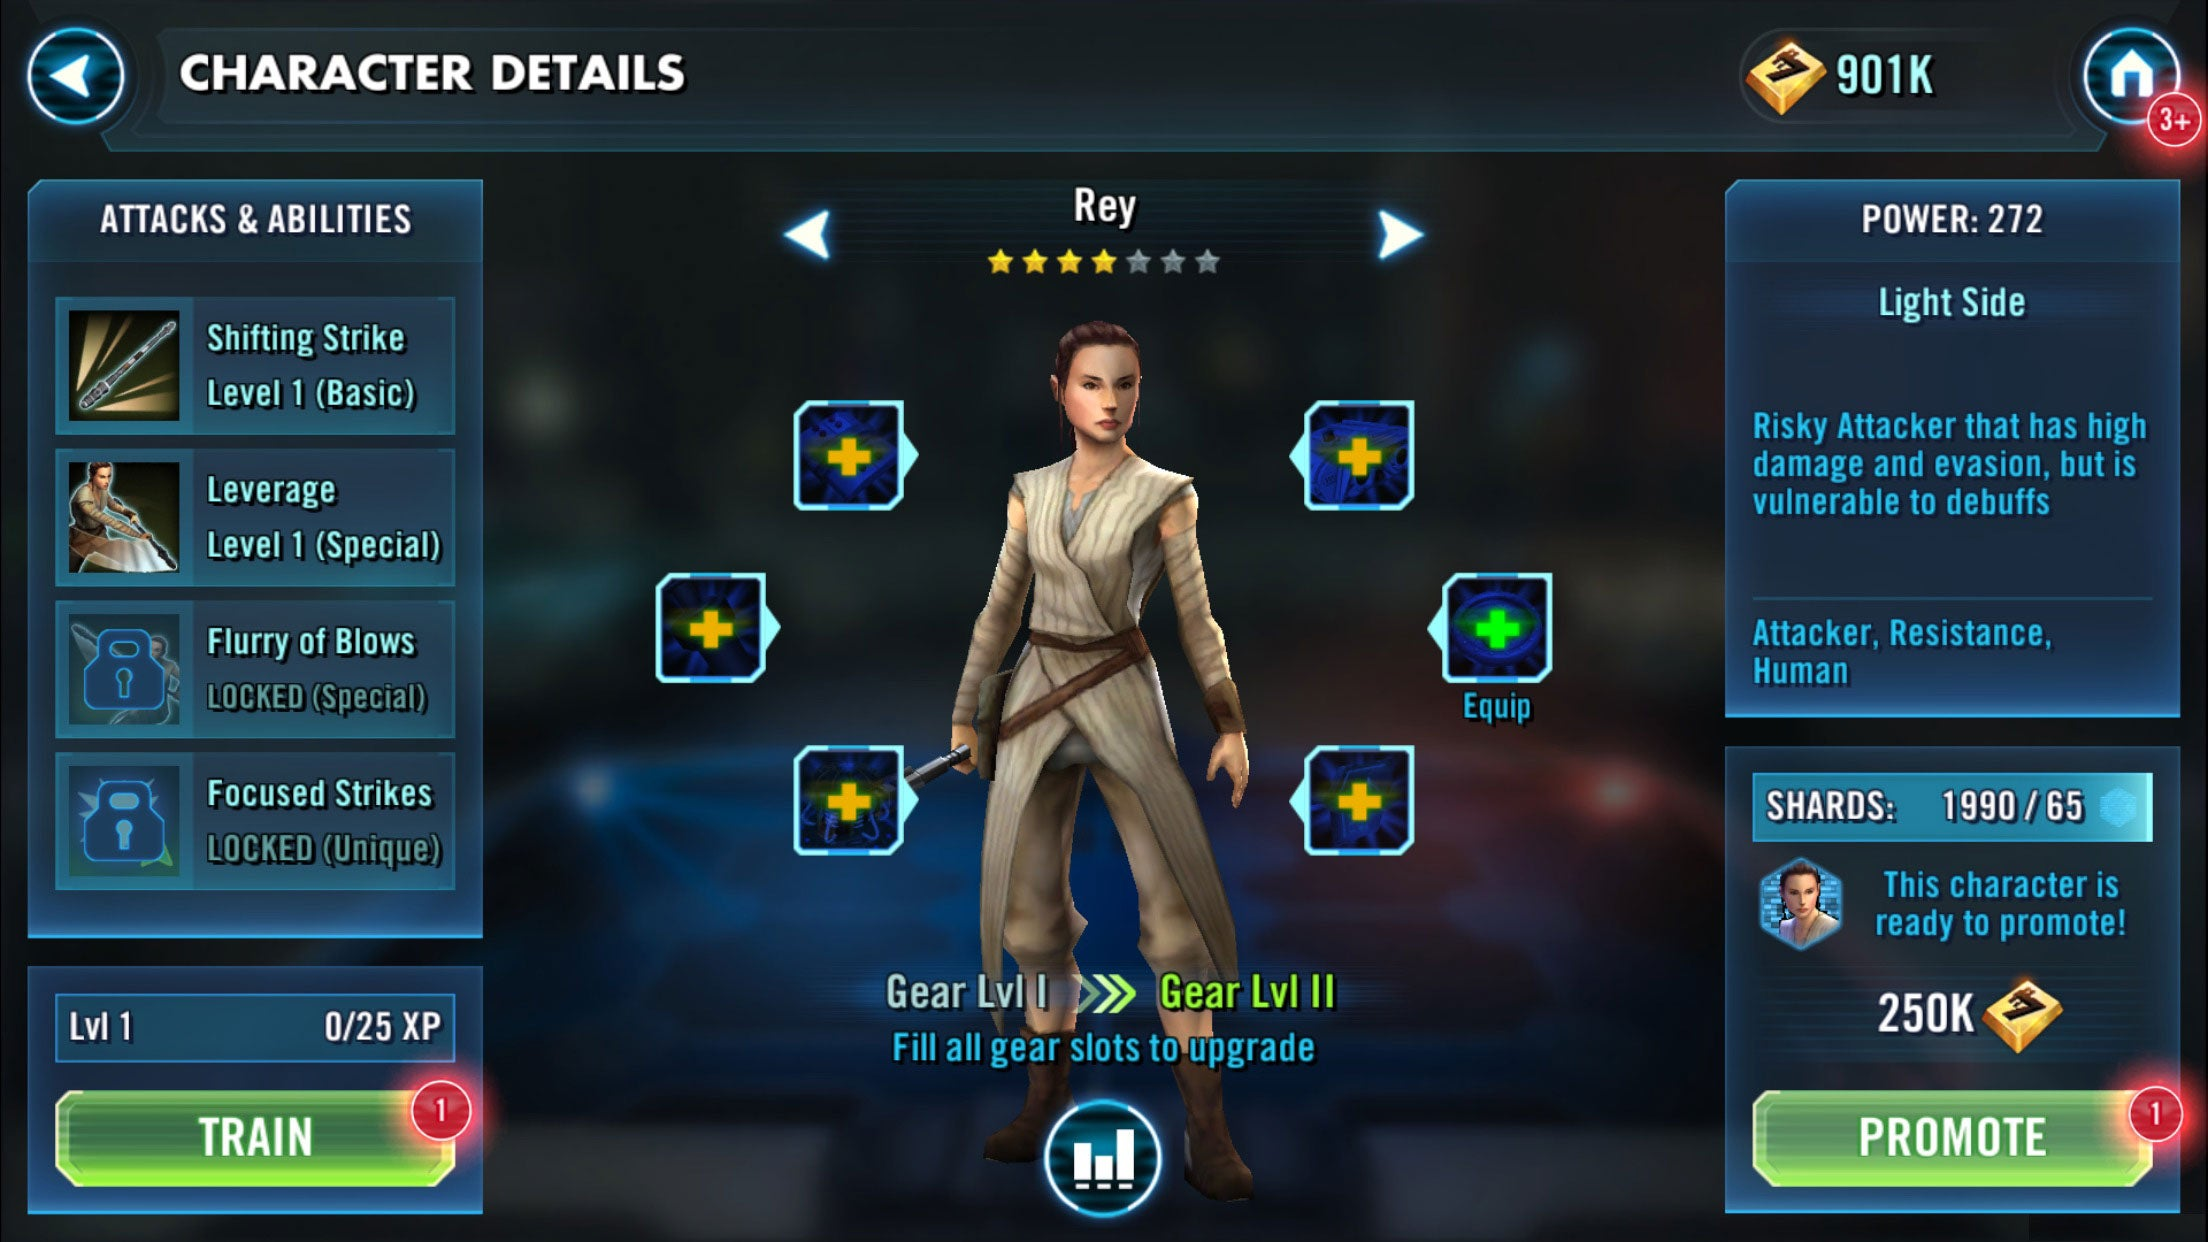 How Stars Wars Mobile Games Are Celebrating The Force Awakens